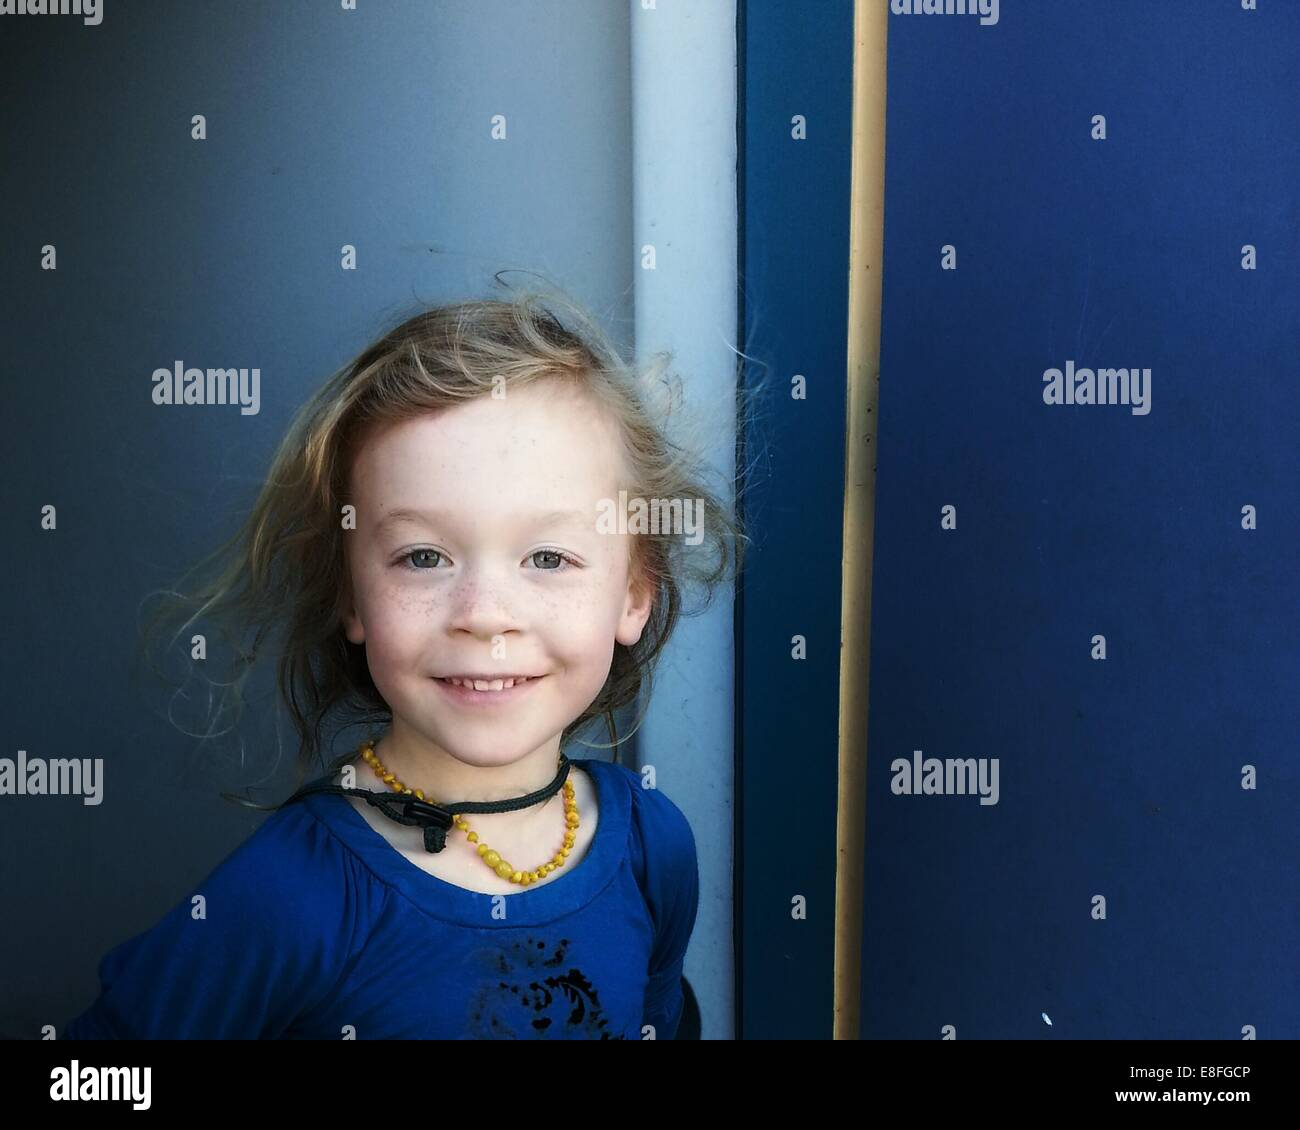 Portrait of a smiling girl Photo Stock